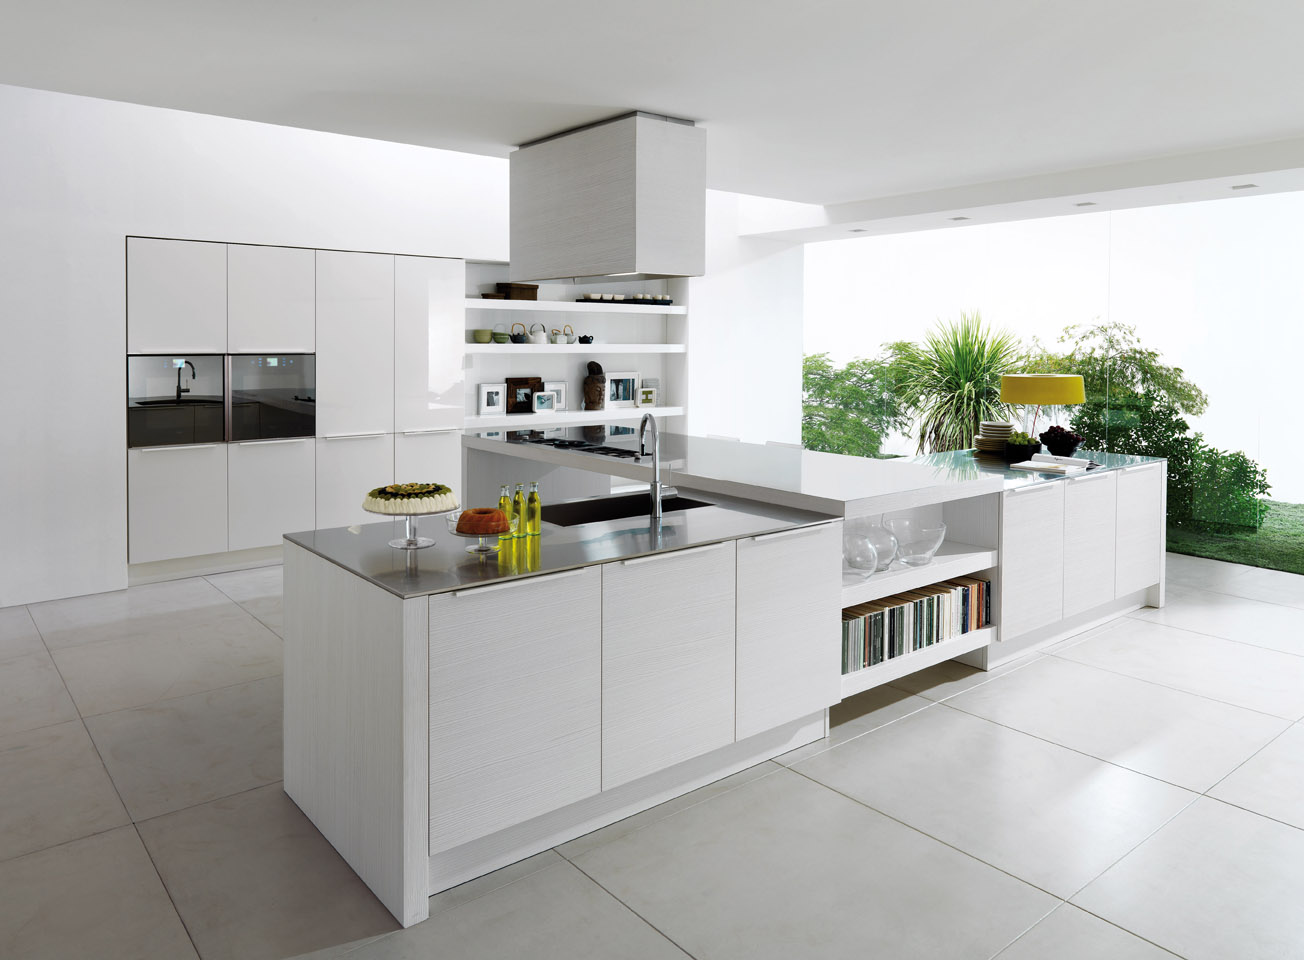 Amazing White Modern Kitchen Design Ideas 1304 x 960 · 183 kB · jpeg